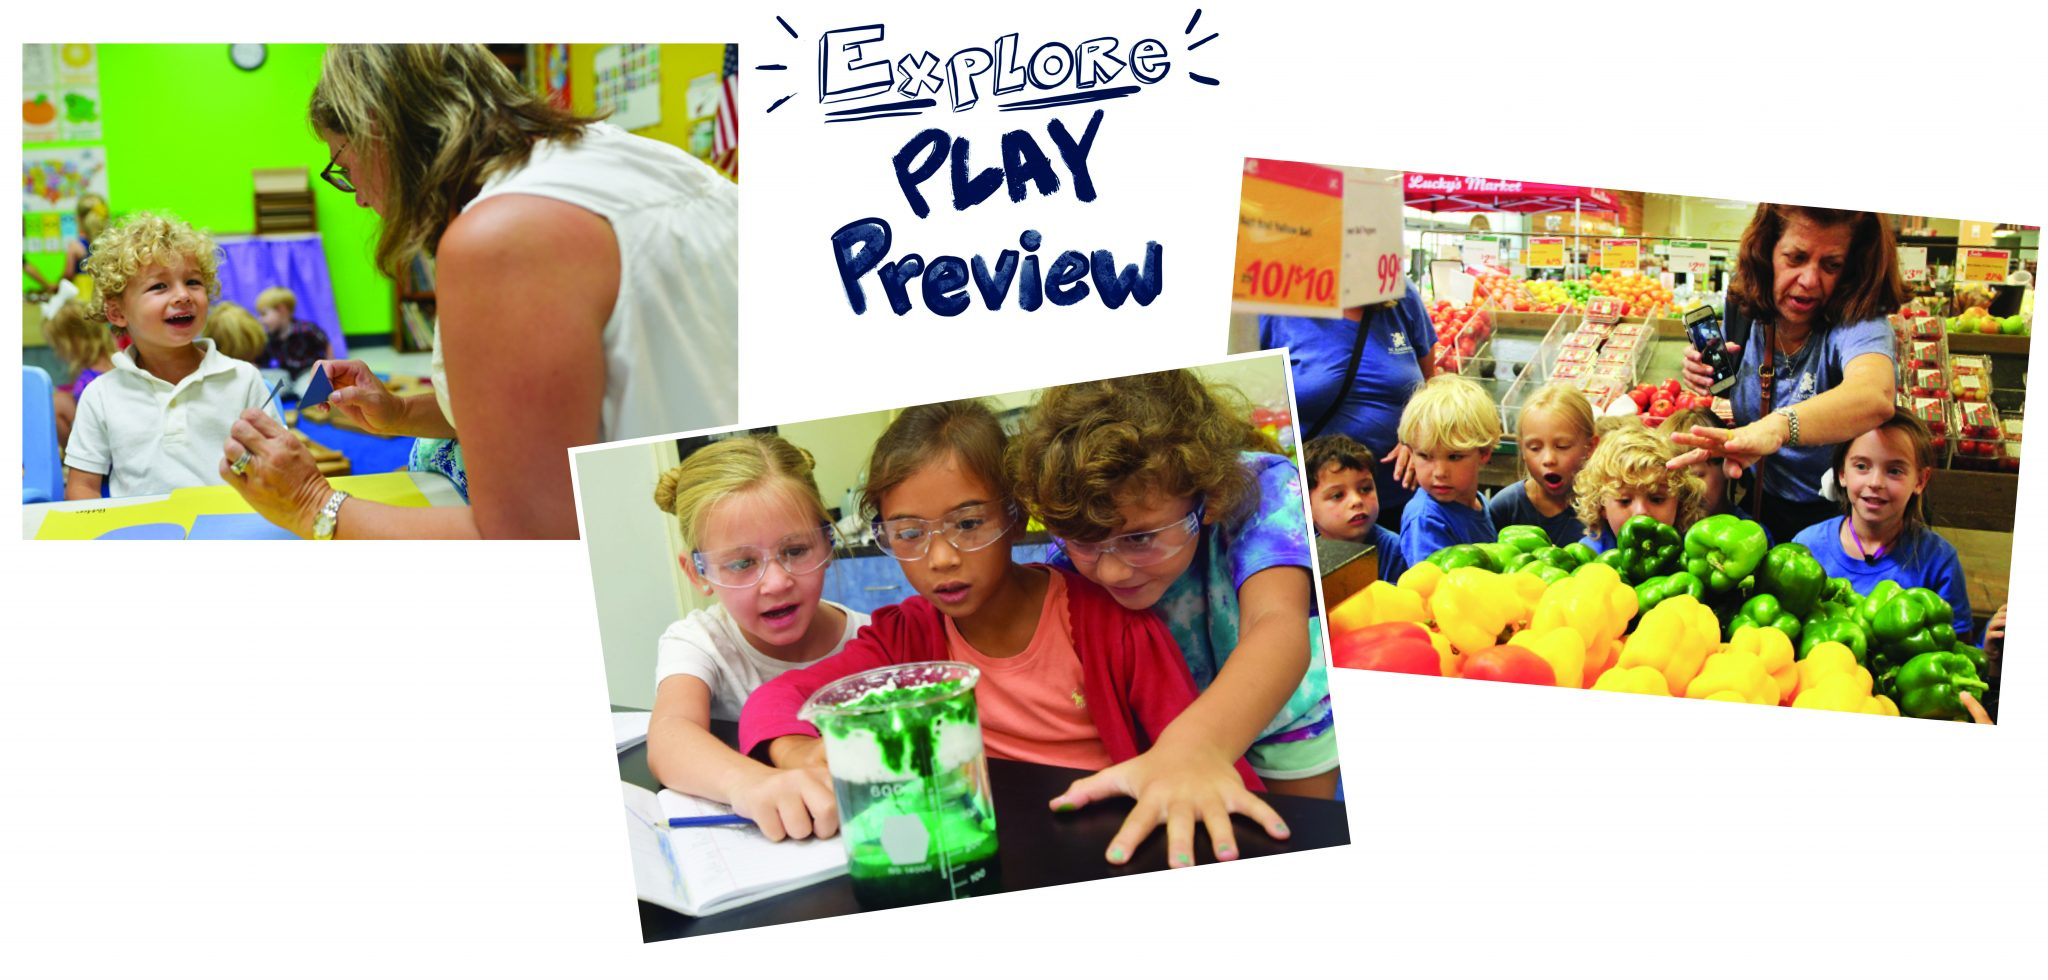 explore play preview